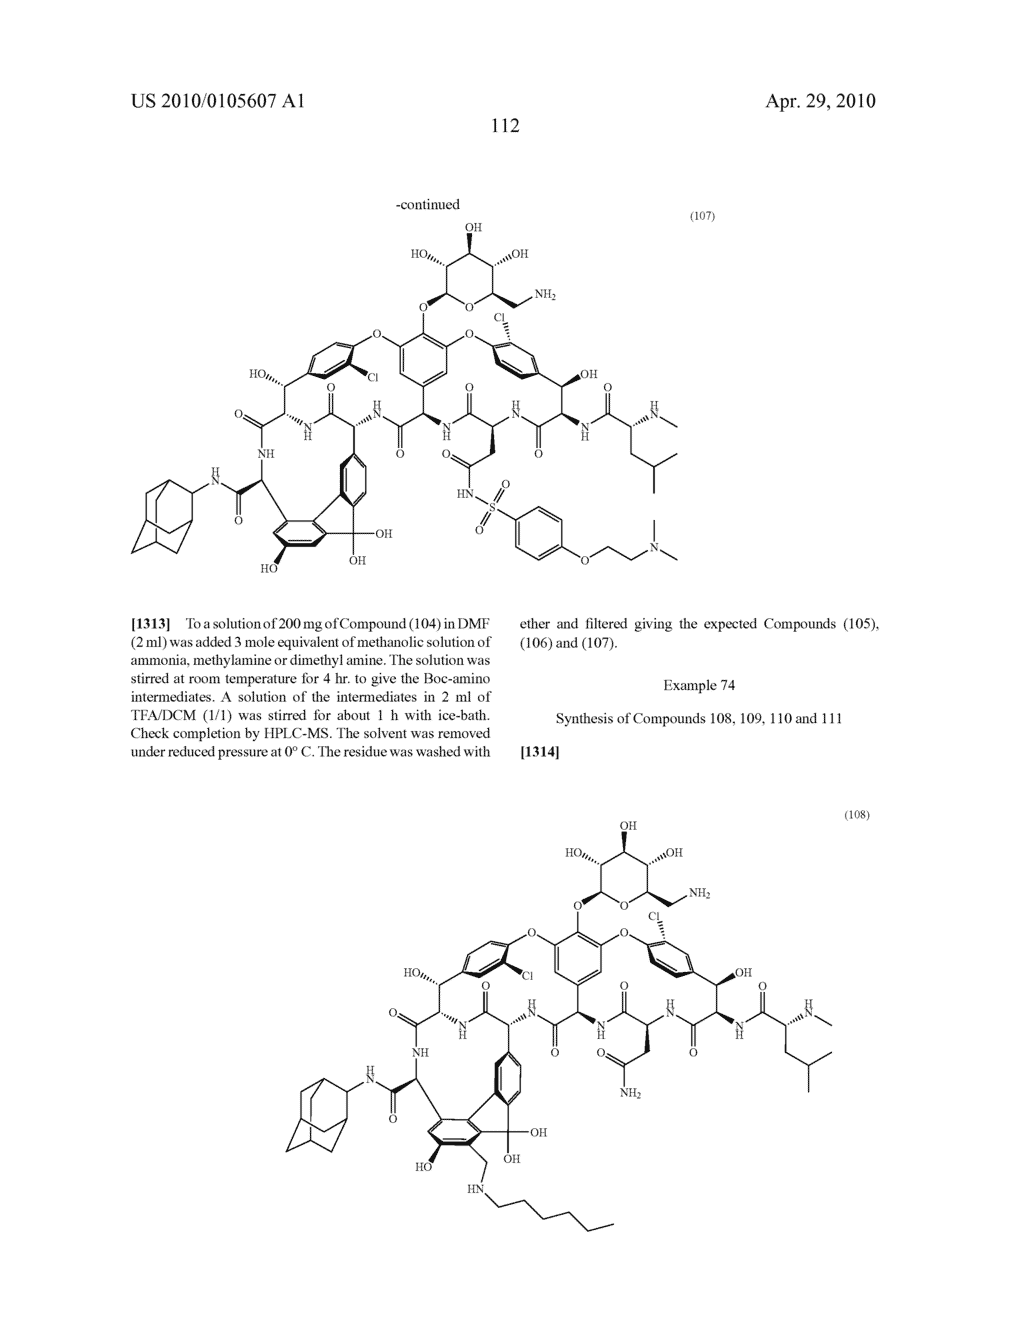 NOVEL SEMI-SYNTHETIC GLYCOPEPTIDES AS ANTIBACTERIAL AGENTS - diagram, schematic, and image 112